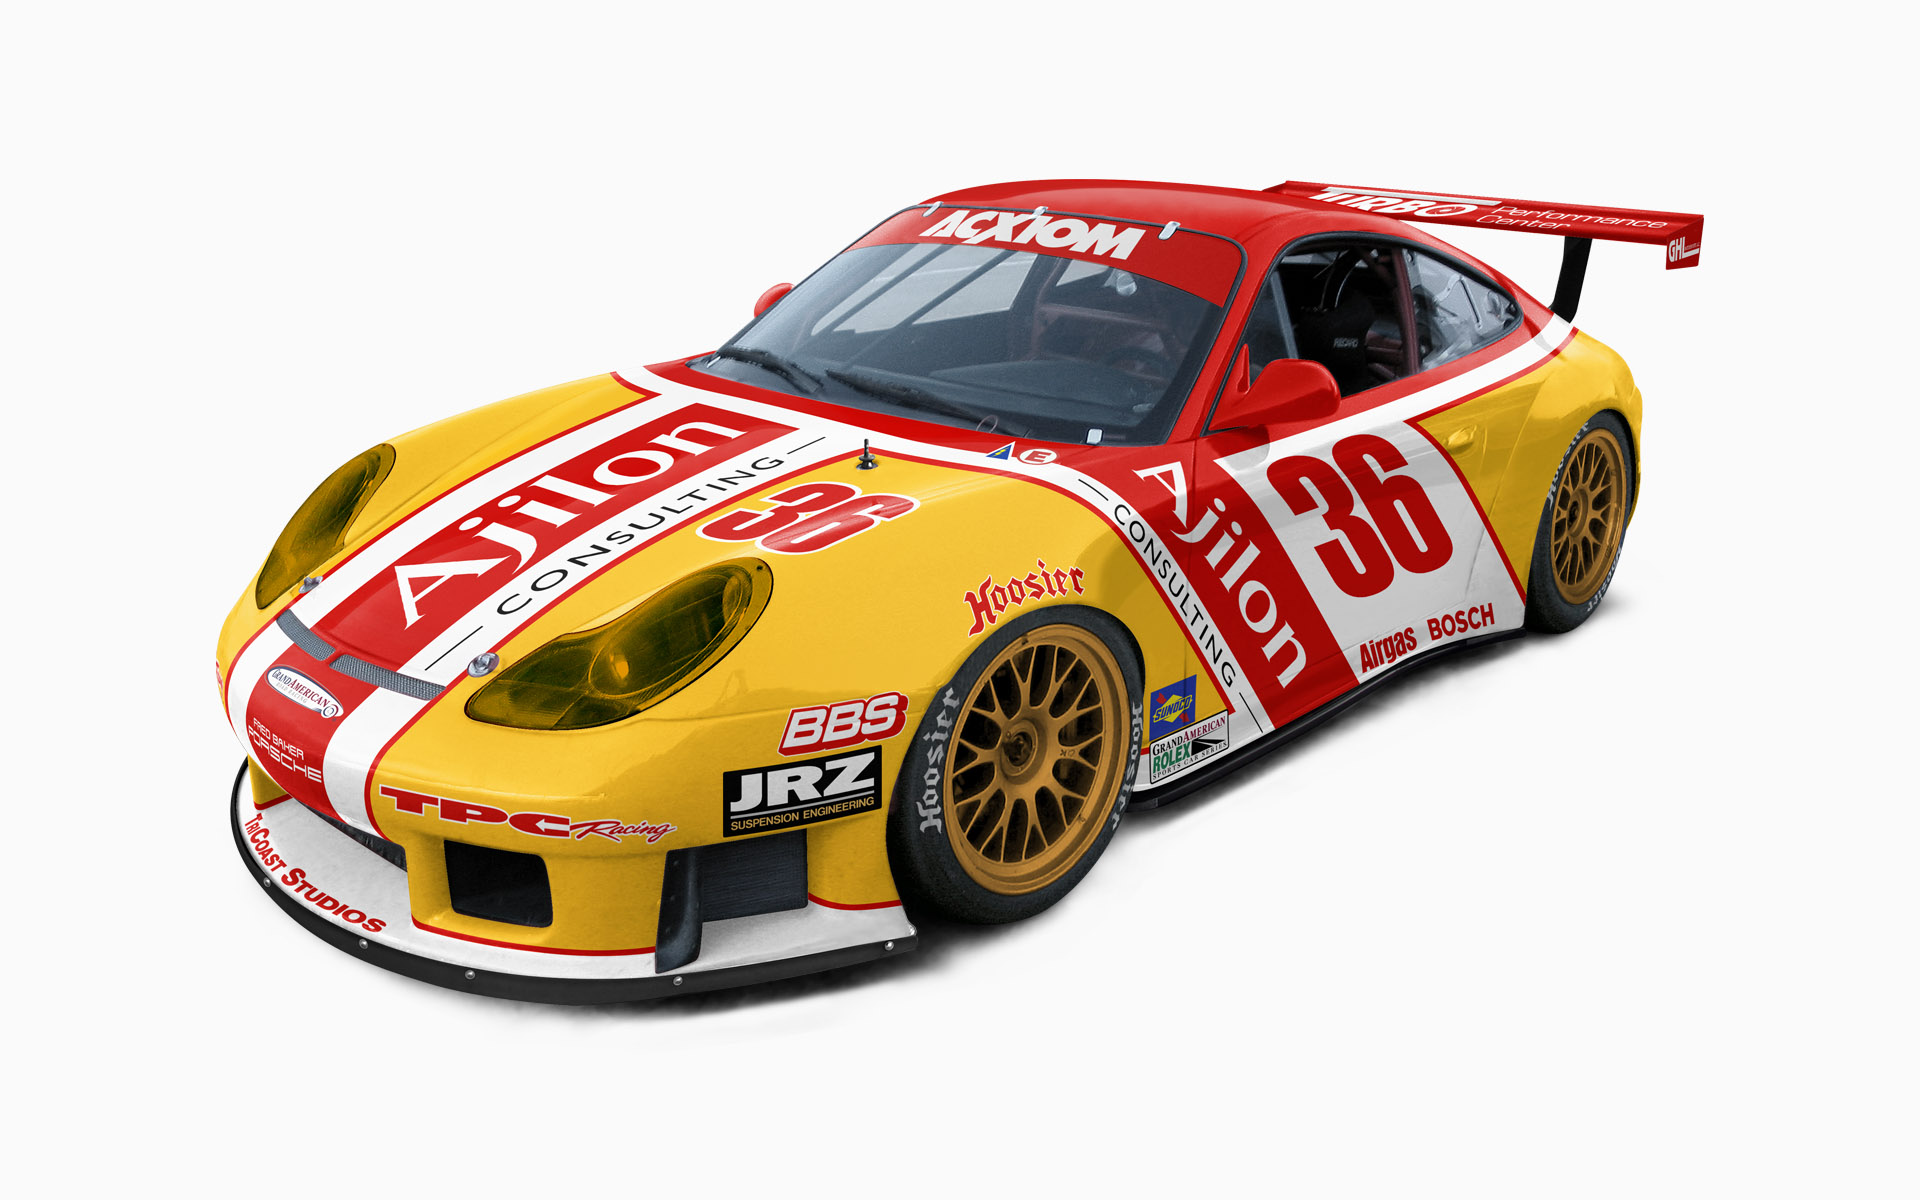 2005 TPC Racing Ajilon Consulting Porsche 911 GT3RS GT Livery Visualization